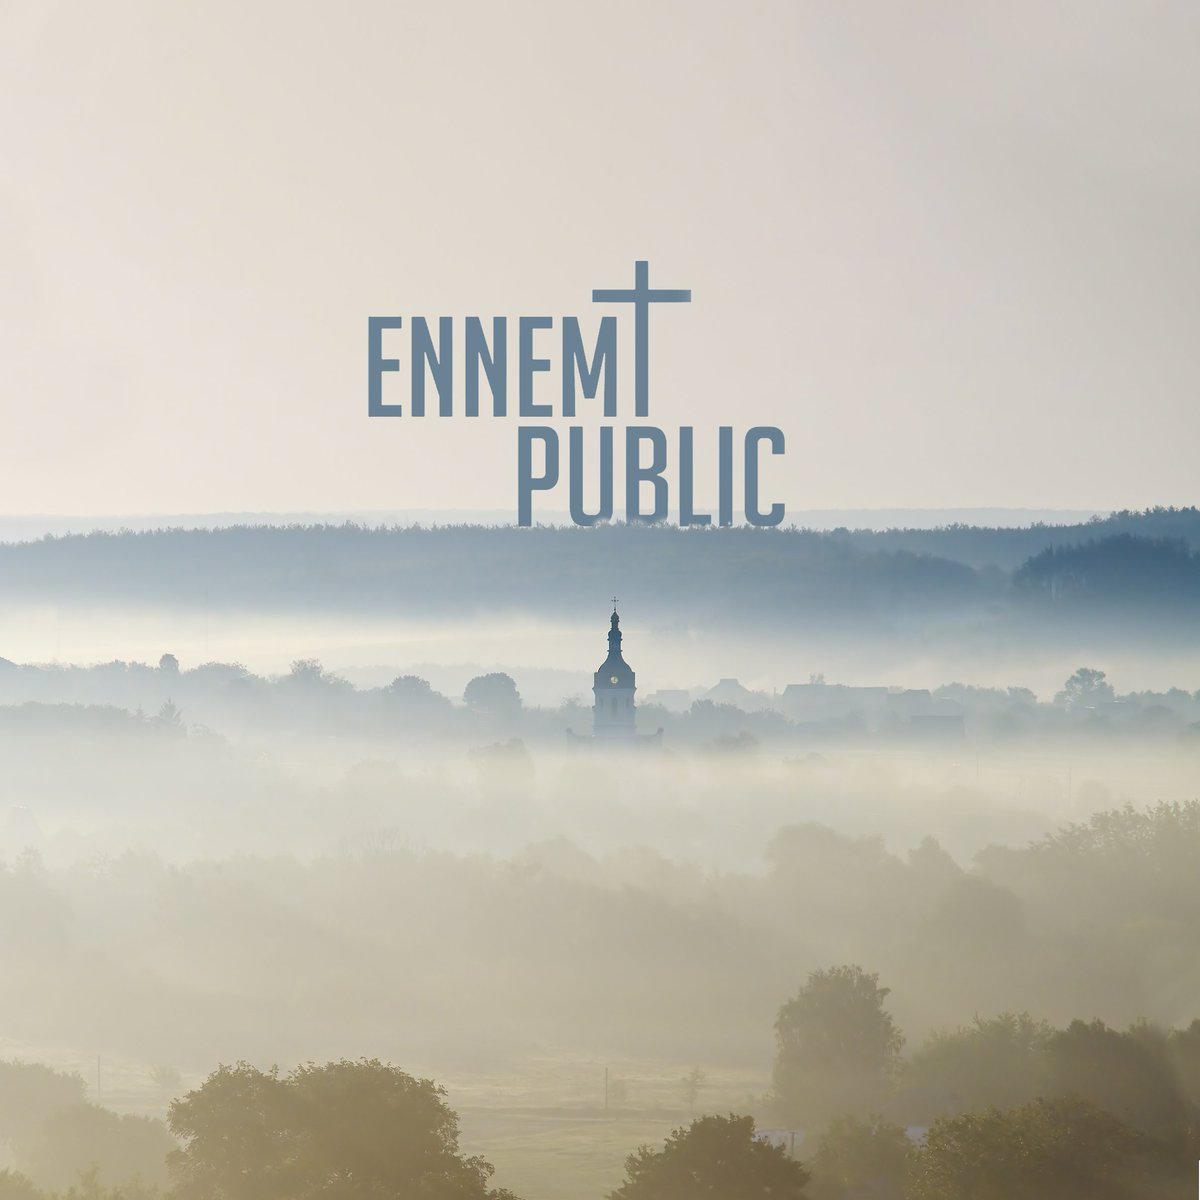 🔎#AuxipressStudy🔎 DID YOU KNOW : Media visibility for @Ennemi_Public__  season 2 increased by 34% over the last year. For Game of Thrones it increases by 8%. Did you watch #EnnemiPublic ? 🤔 @RTBF #Auvio #RTBF @JeanjacquesRaus @SBlanchoud  #AngeloBison #Polar #Belgique